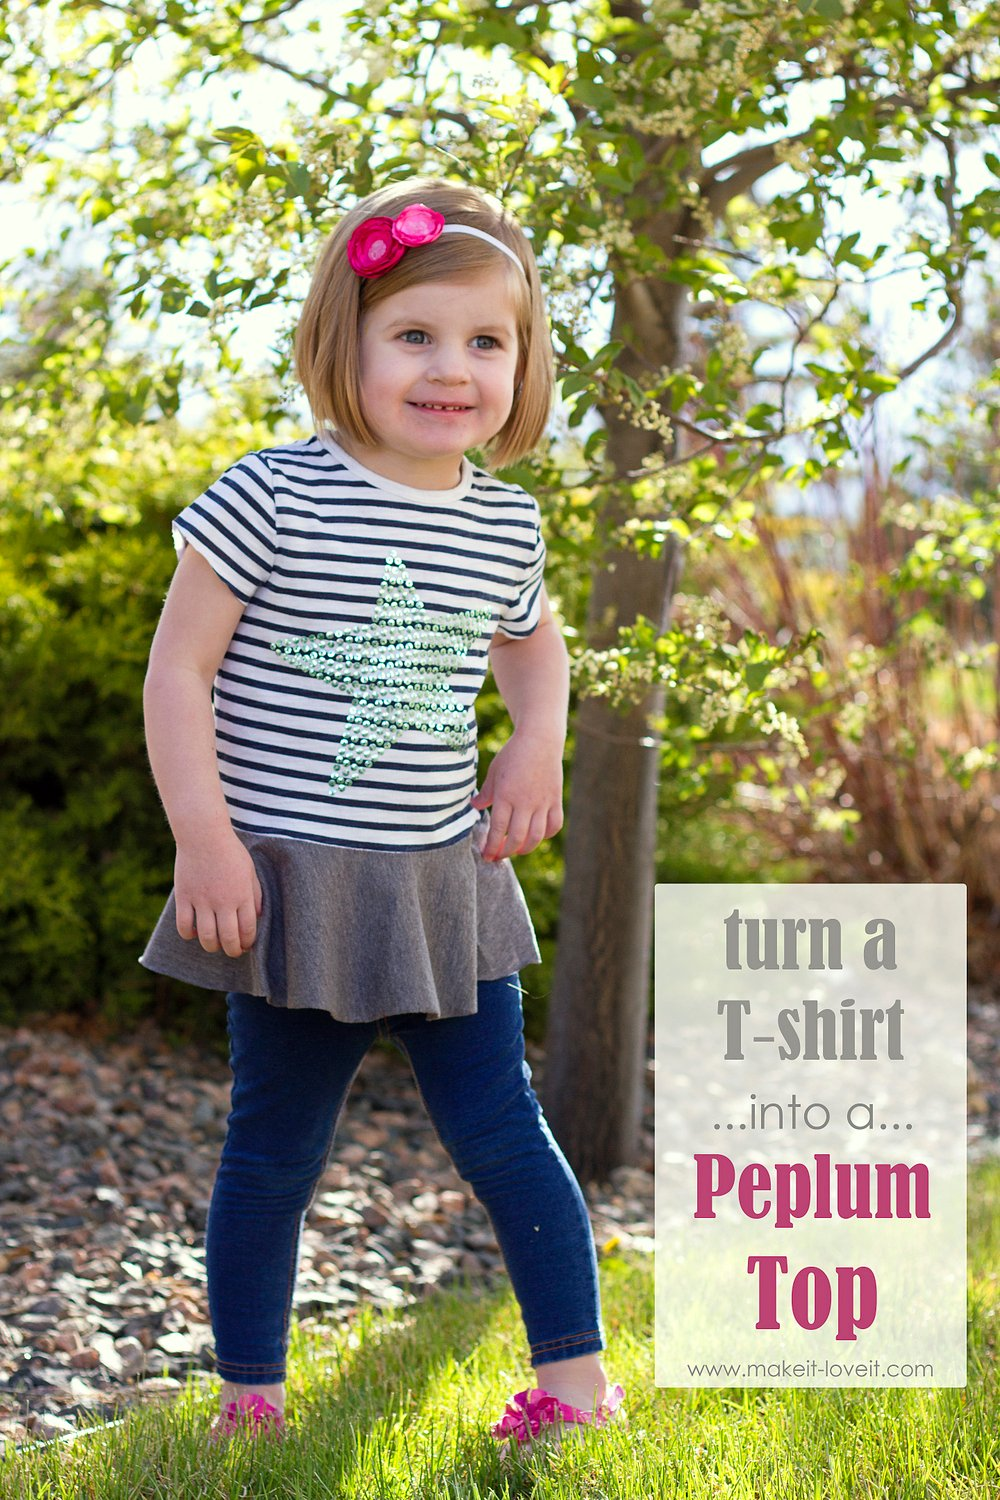 Turn a too-small tshirt…into a peplum top